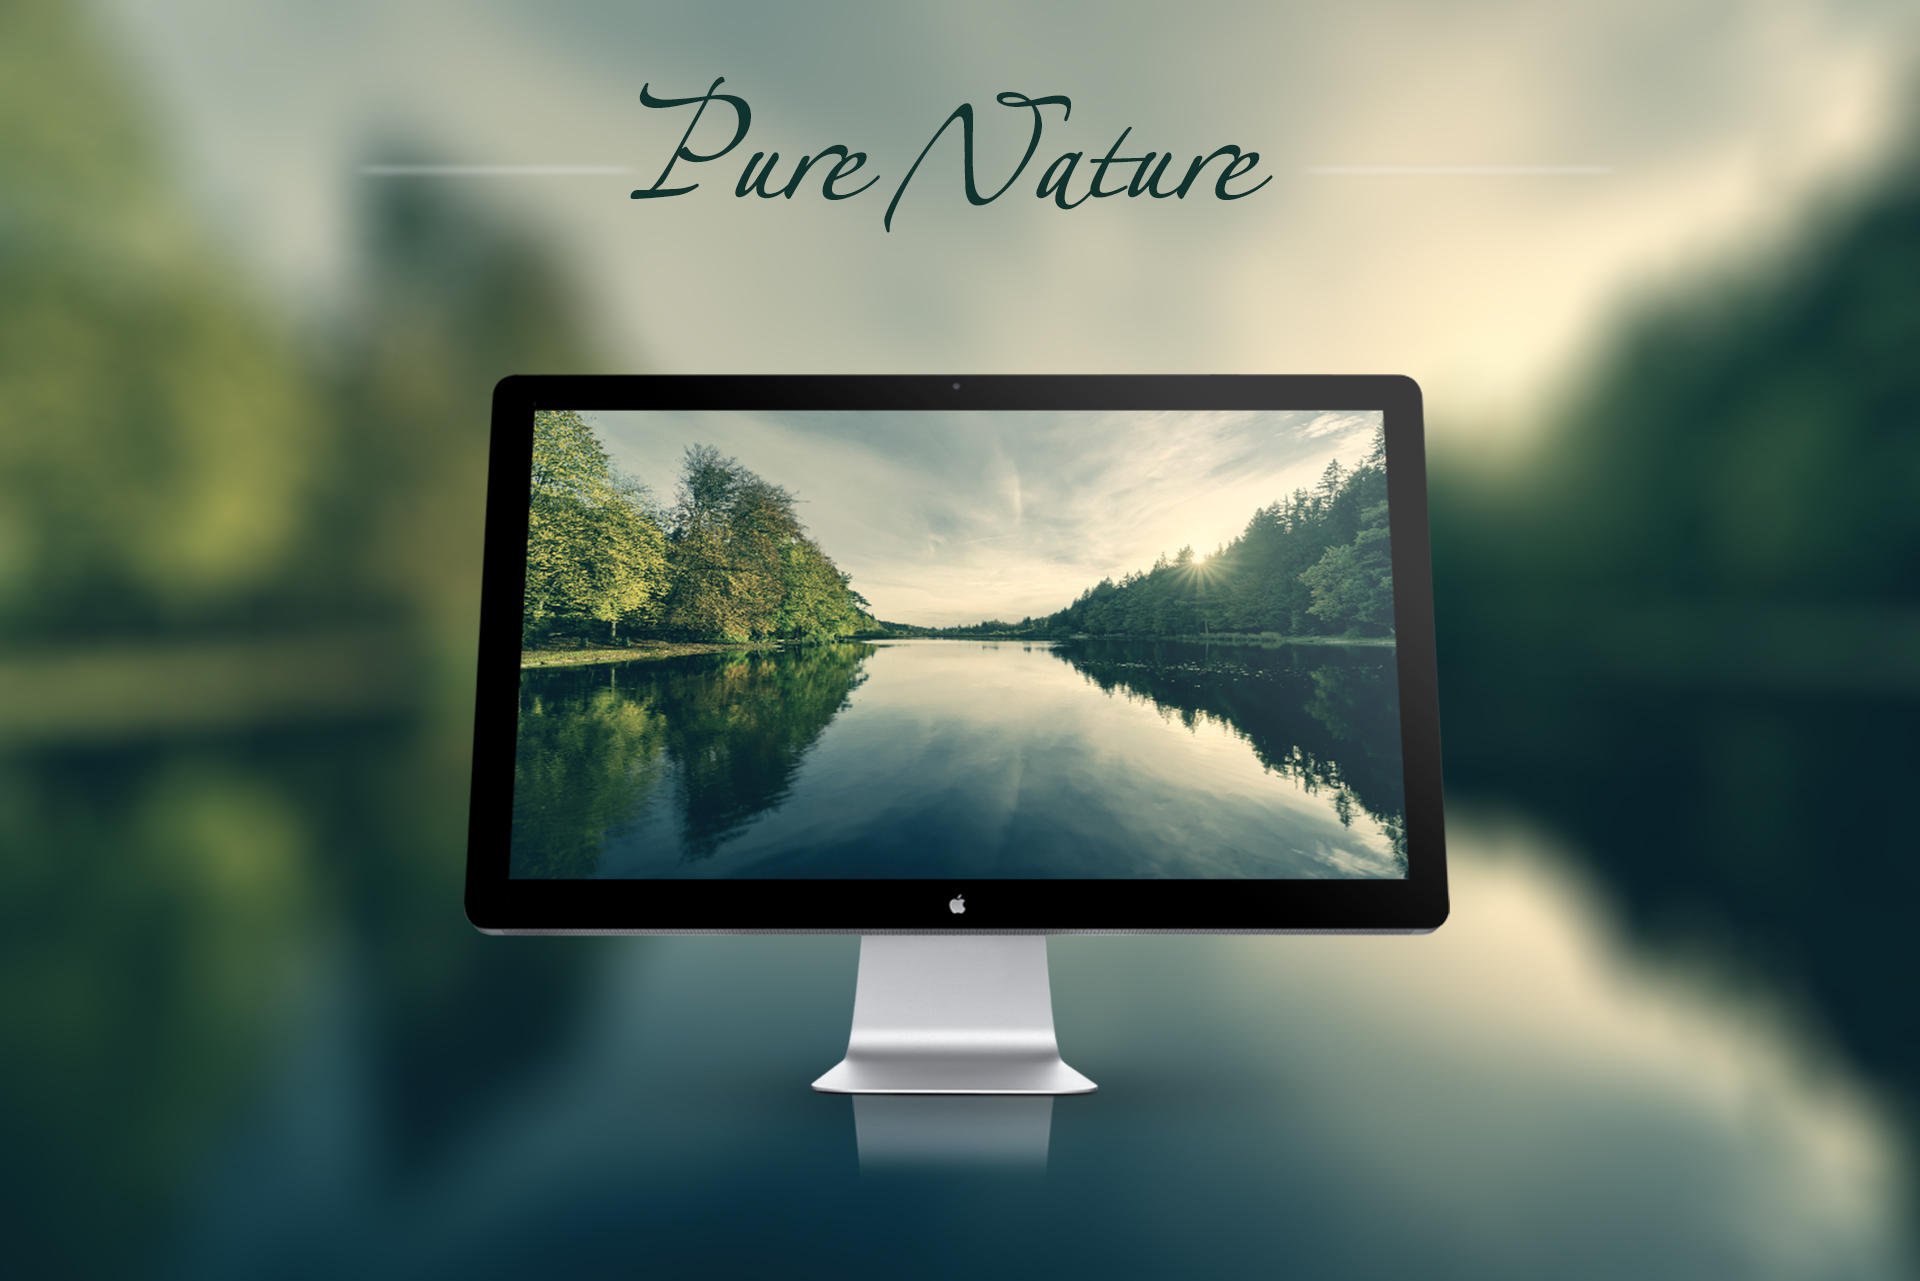 Pure Nature - Wallpaper by Hercules1997